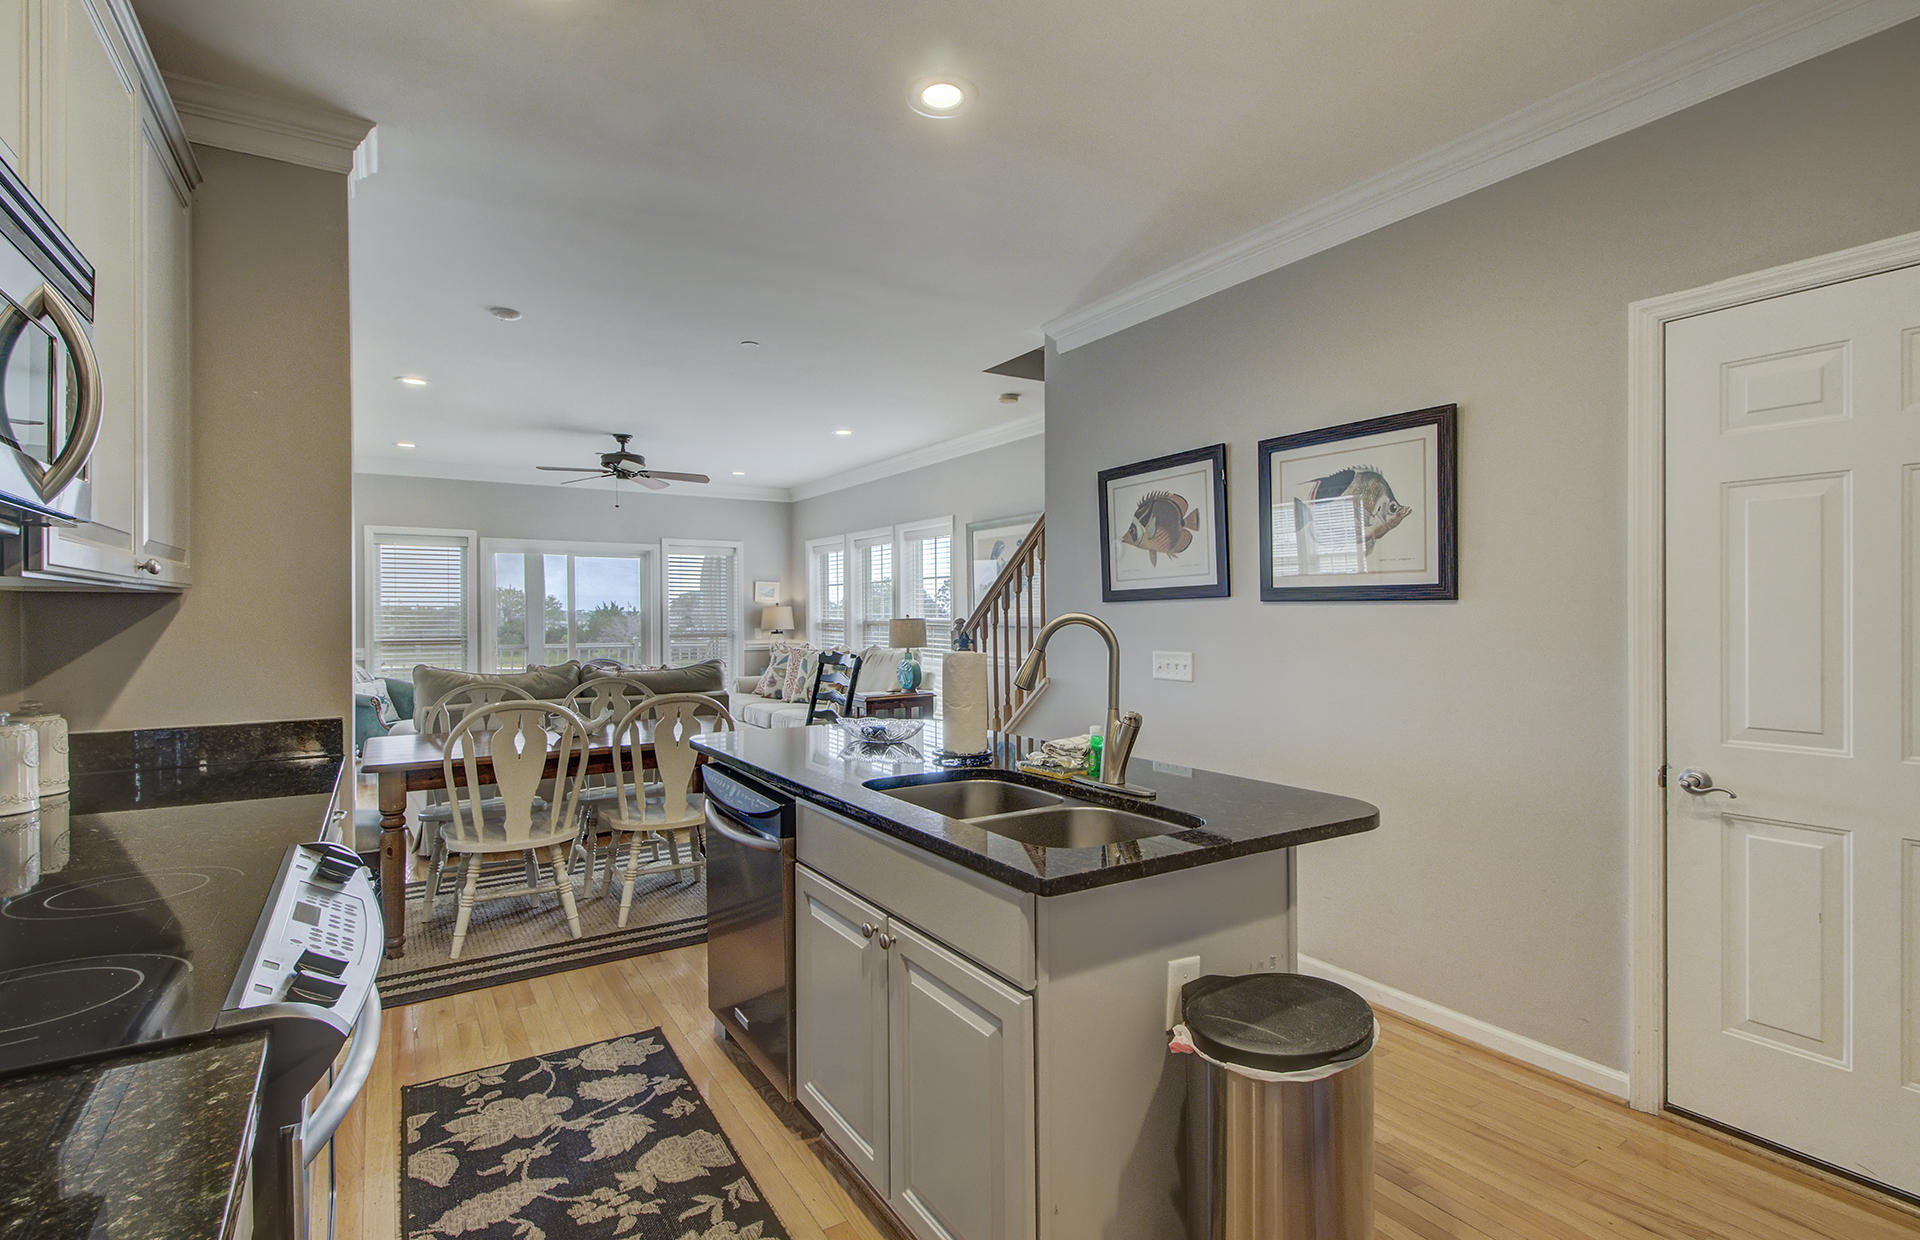 Waters Edge Homes For Sale - 80 2nd, Folly Beach, SC - 45